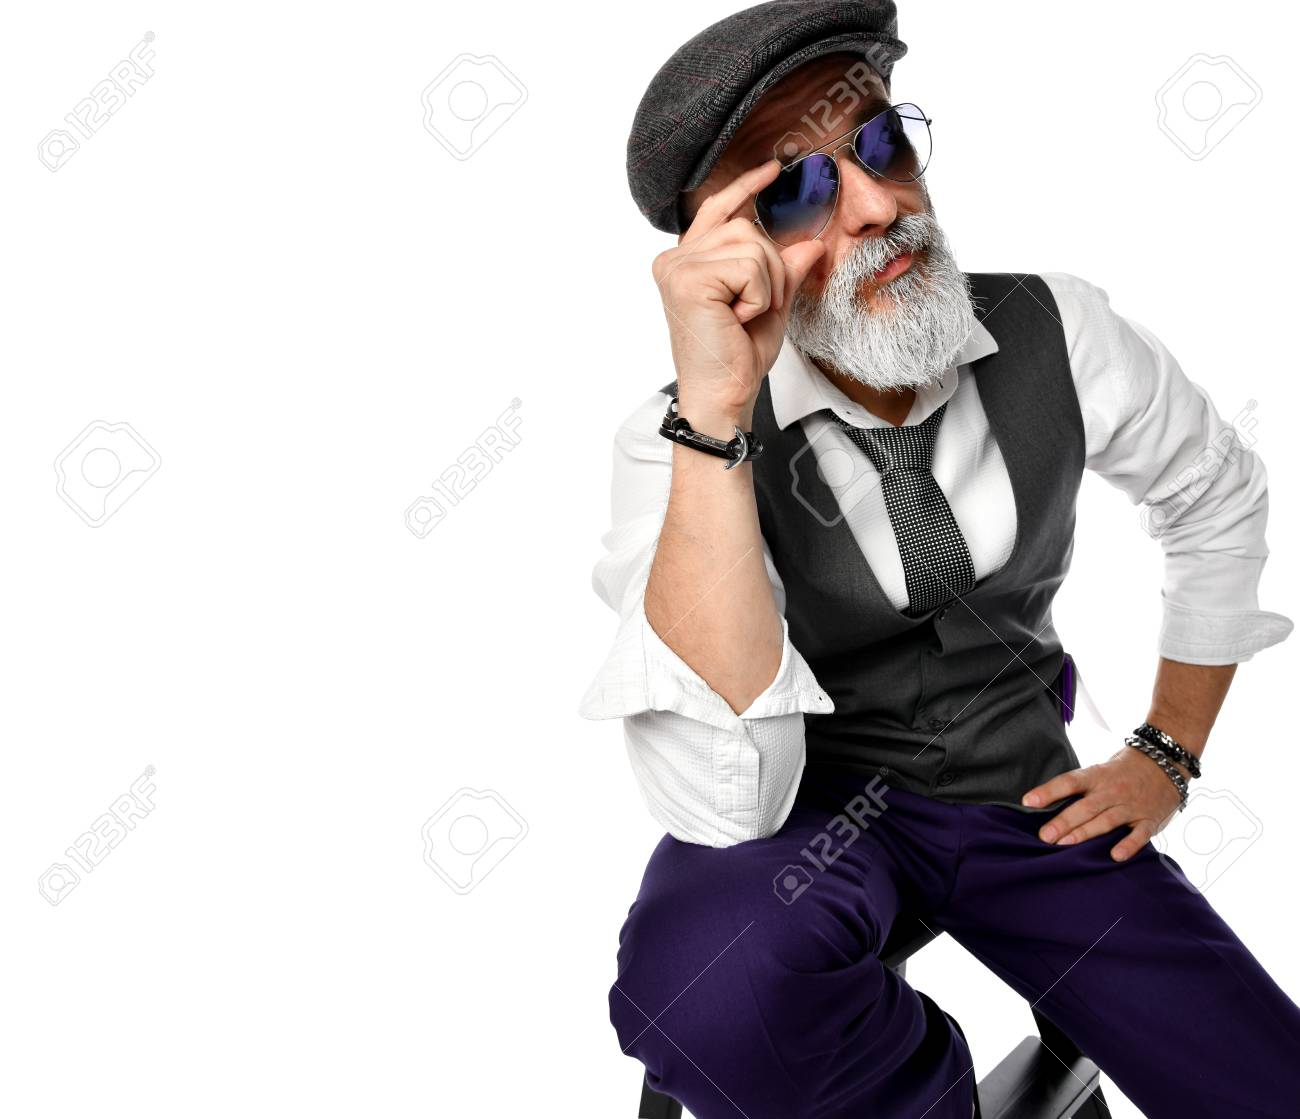 71ab0b4f10f Old brutal senior millionaire man in white shirt and aviator sunglasses  stylish fashionable men isolated on